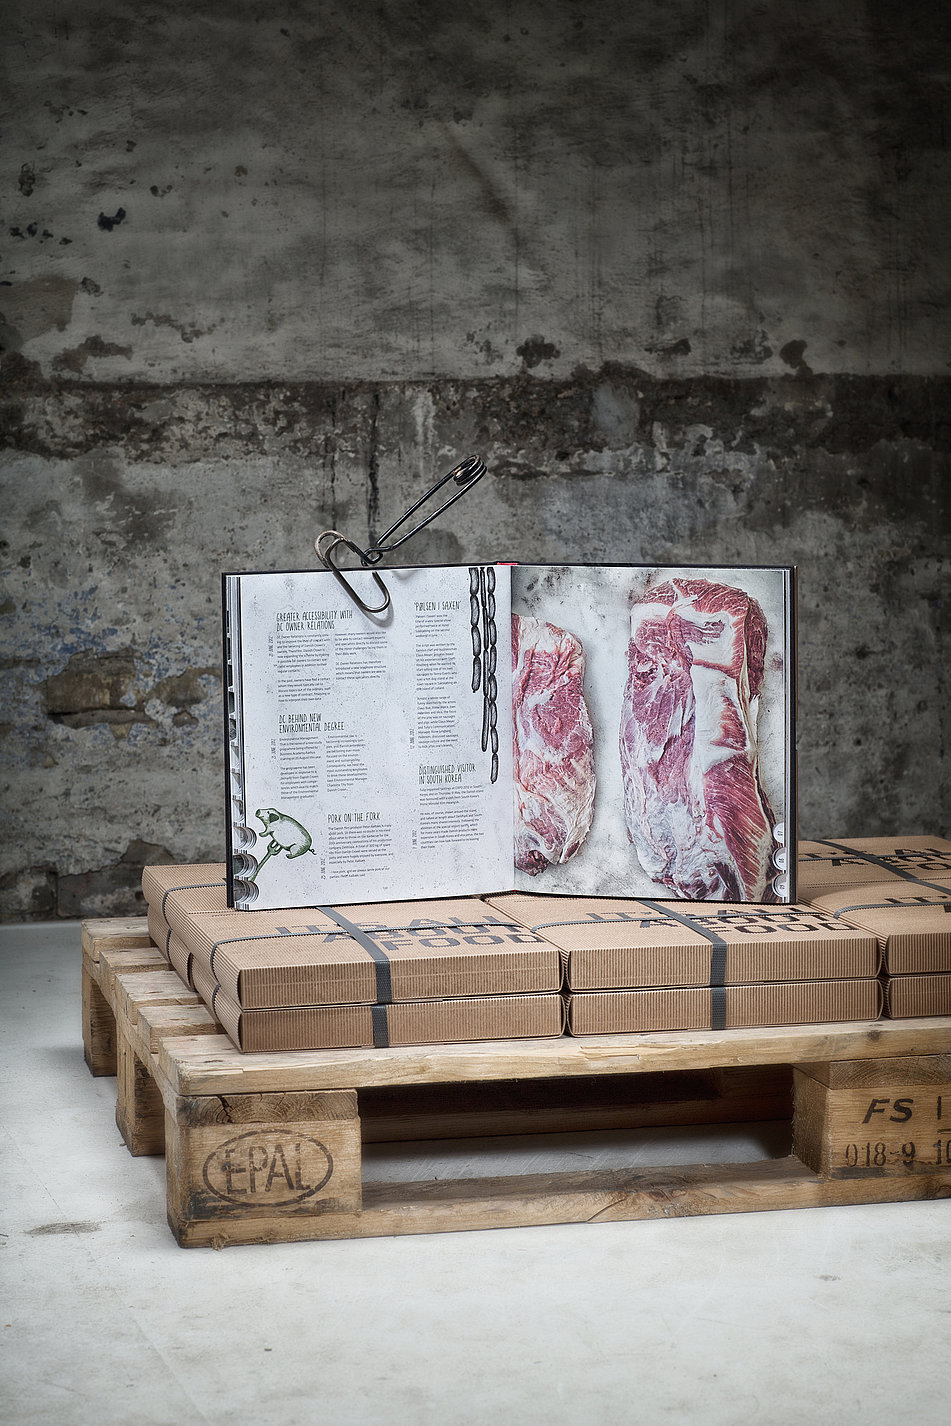 125 Years of Food History Danish Crown Annual Report 2011/12 | Red Dot Design Award